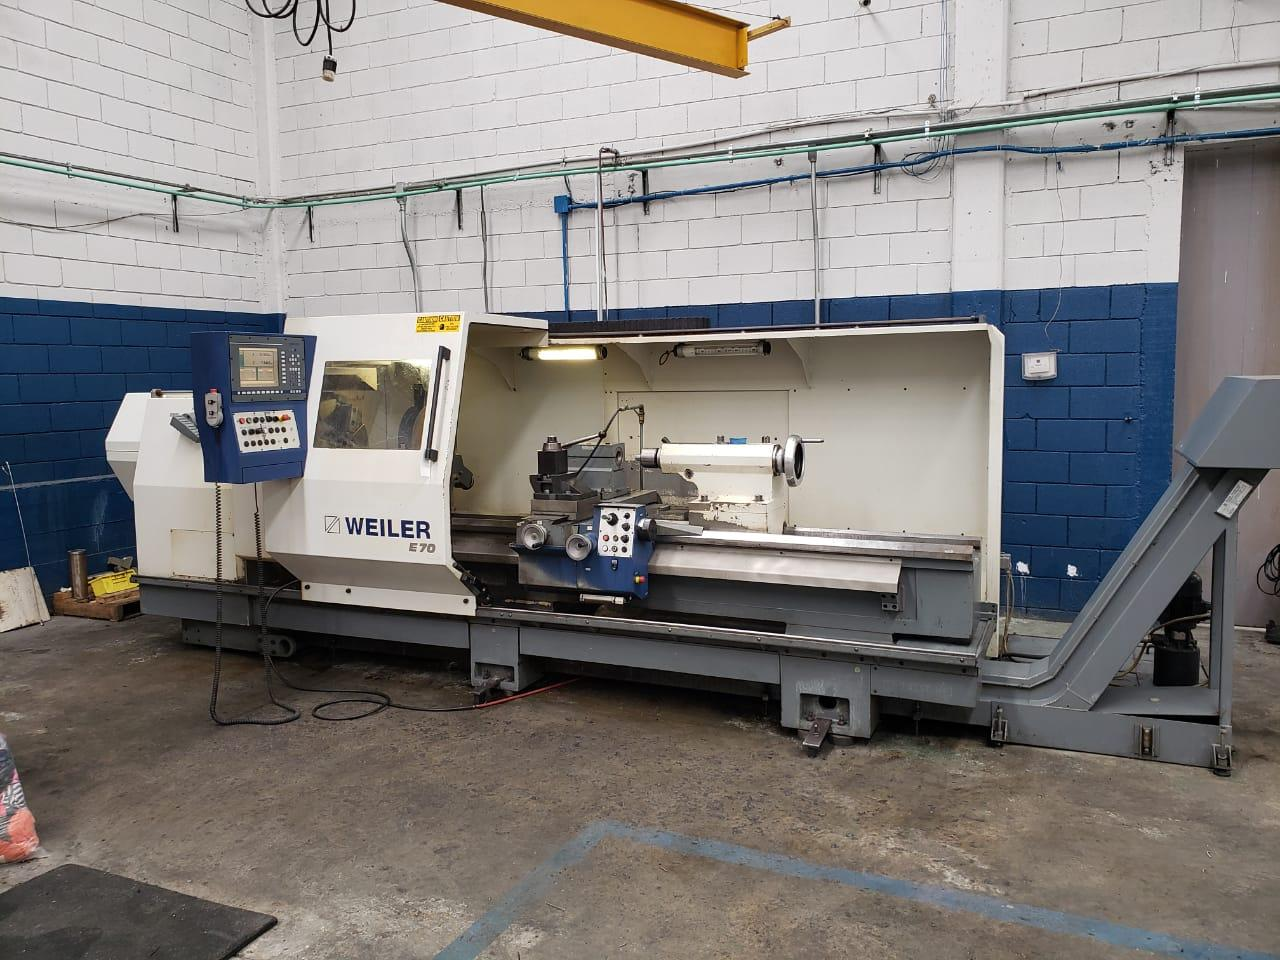 2011  Weiler E70x3000 Hollow Spindle Flat Bed CNC Lathe